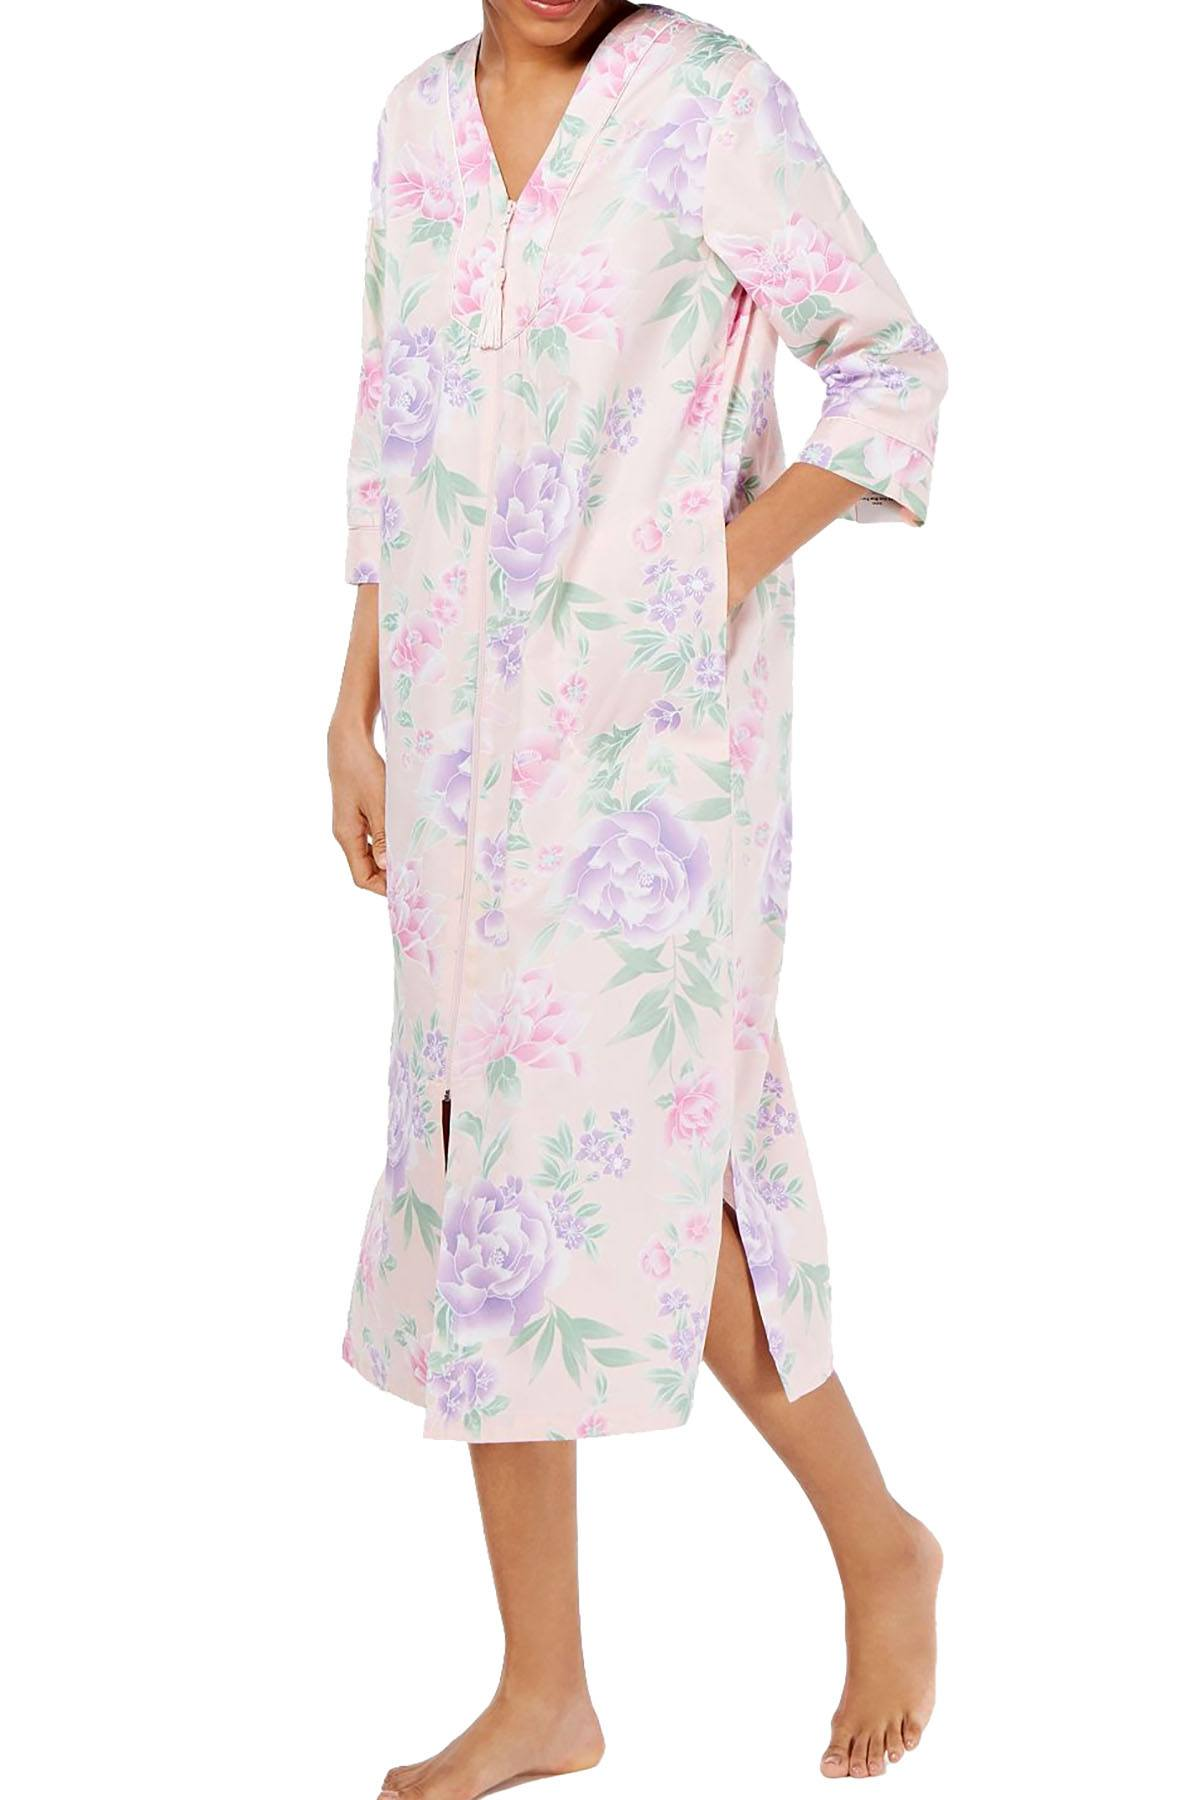 Miss Elaine Printed Cotton Sateen Long Zip Robe in Pink/Violet Floral